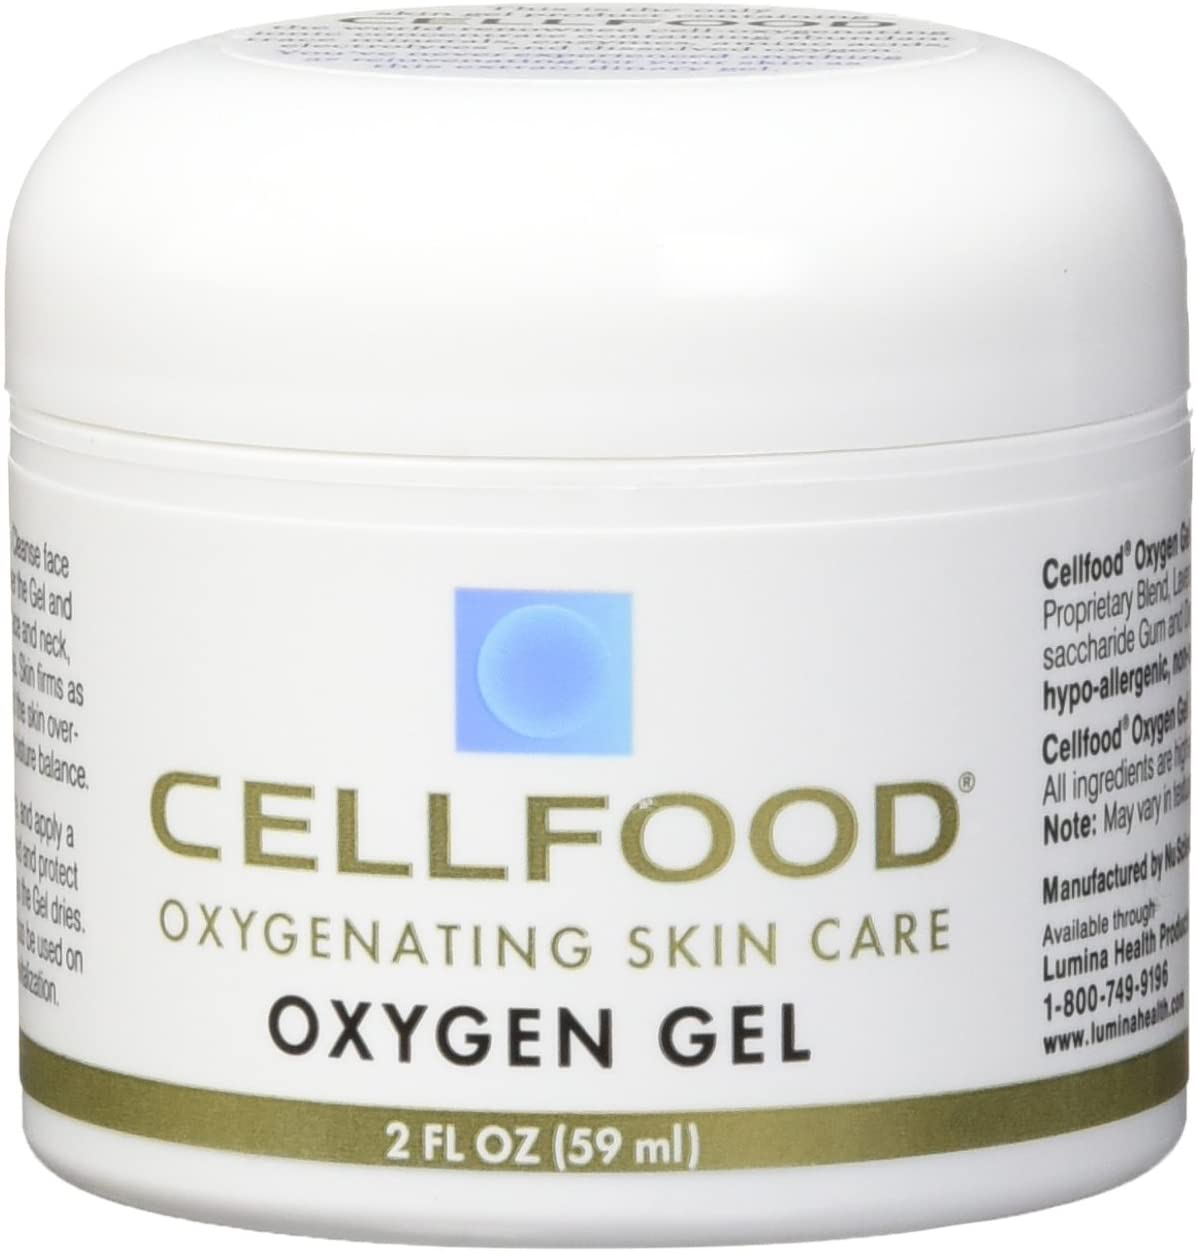 Cellfood, Skin Care Oxygen Gel 2oz